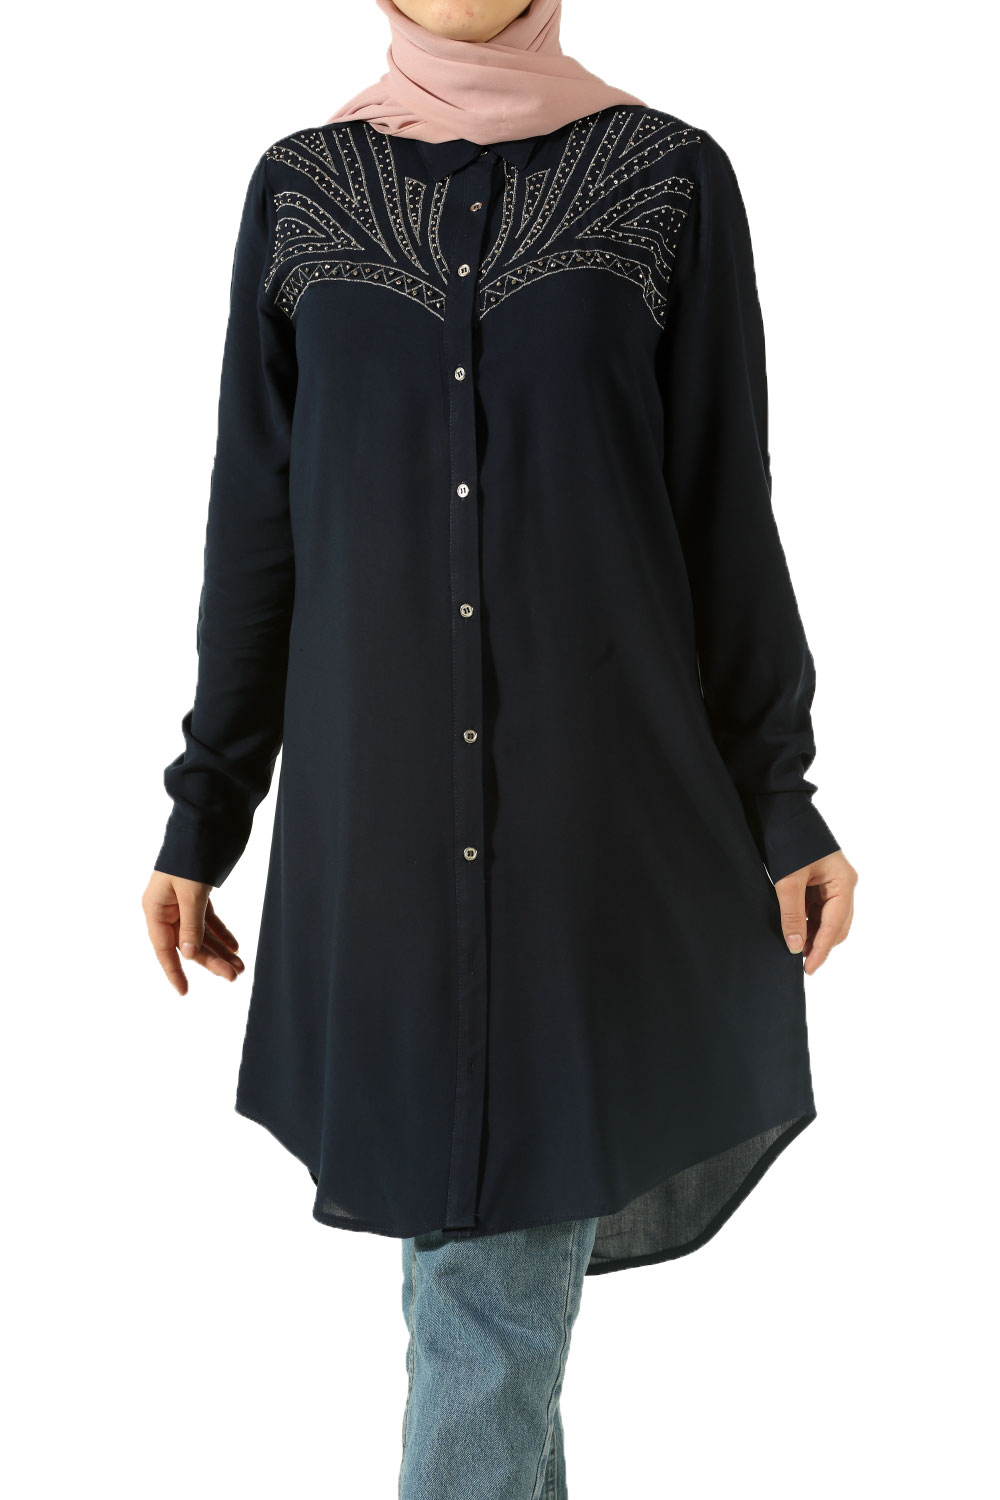 Western Embroidered Shirt TUNIC